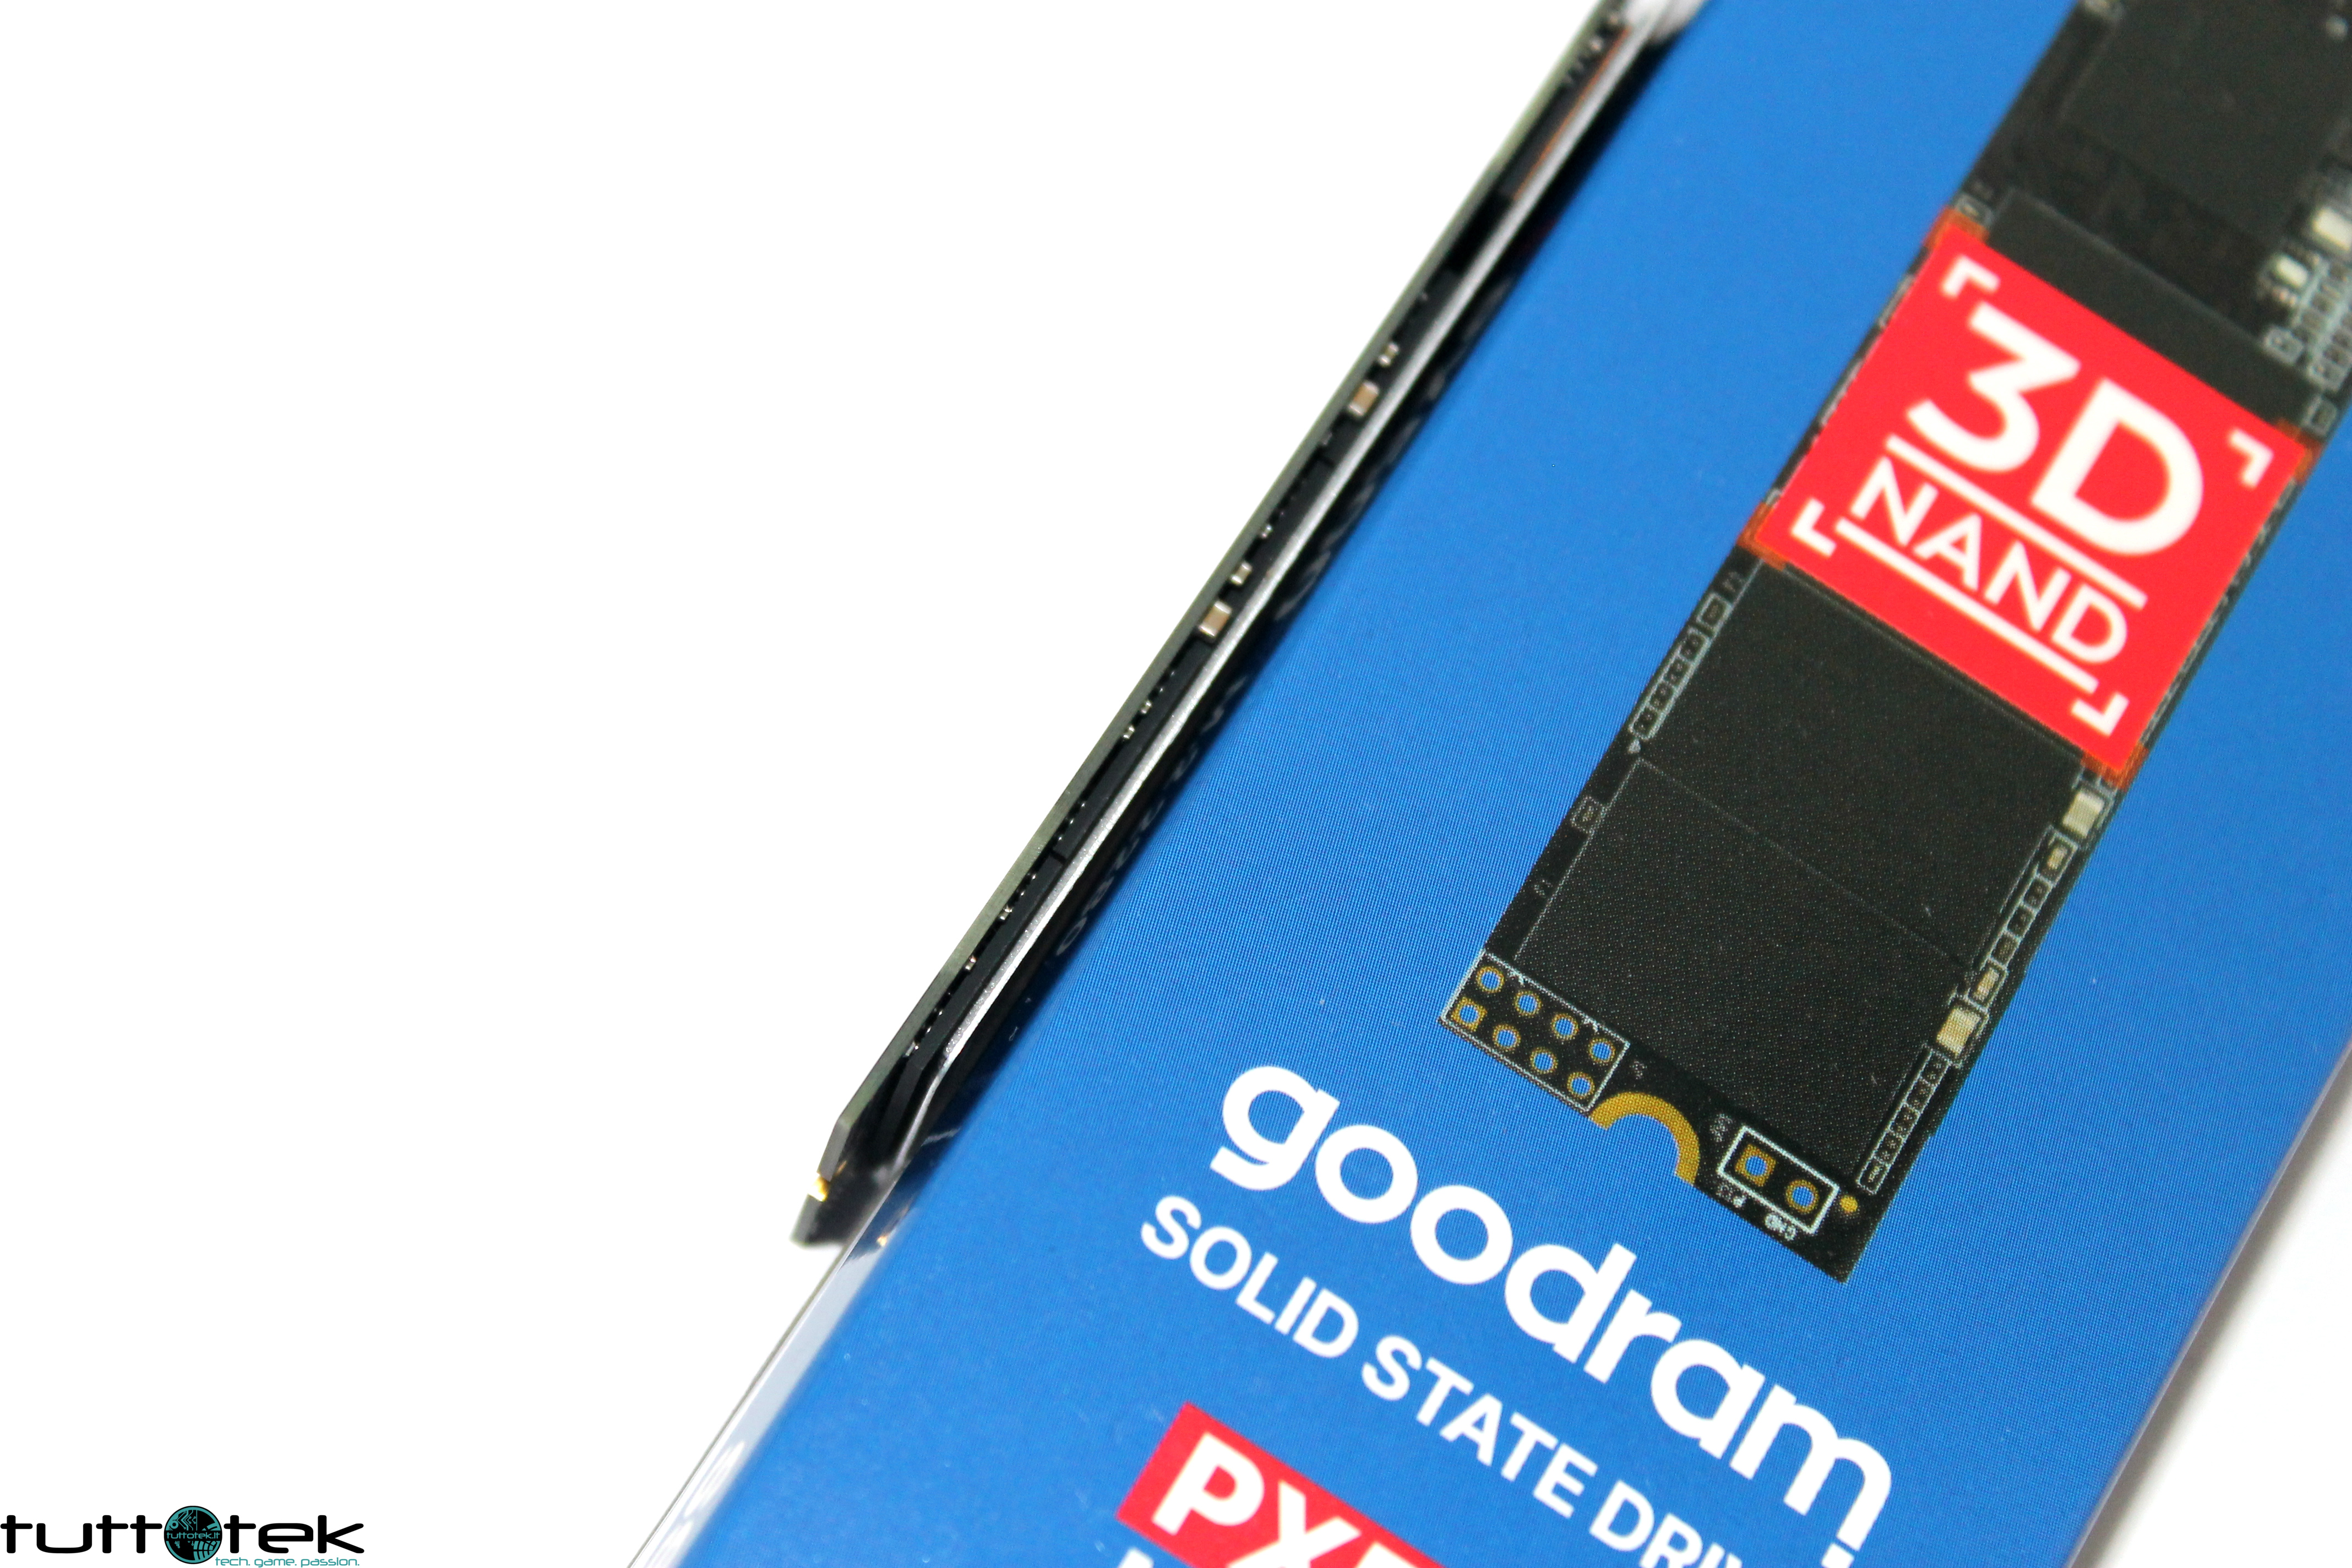 GOODRAM PX500 review: low-cost SSD